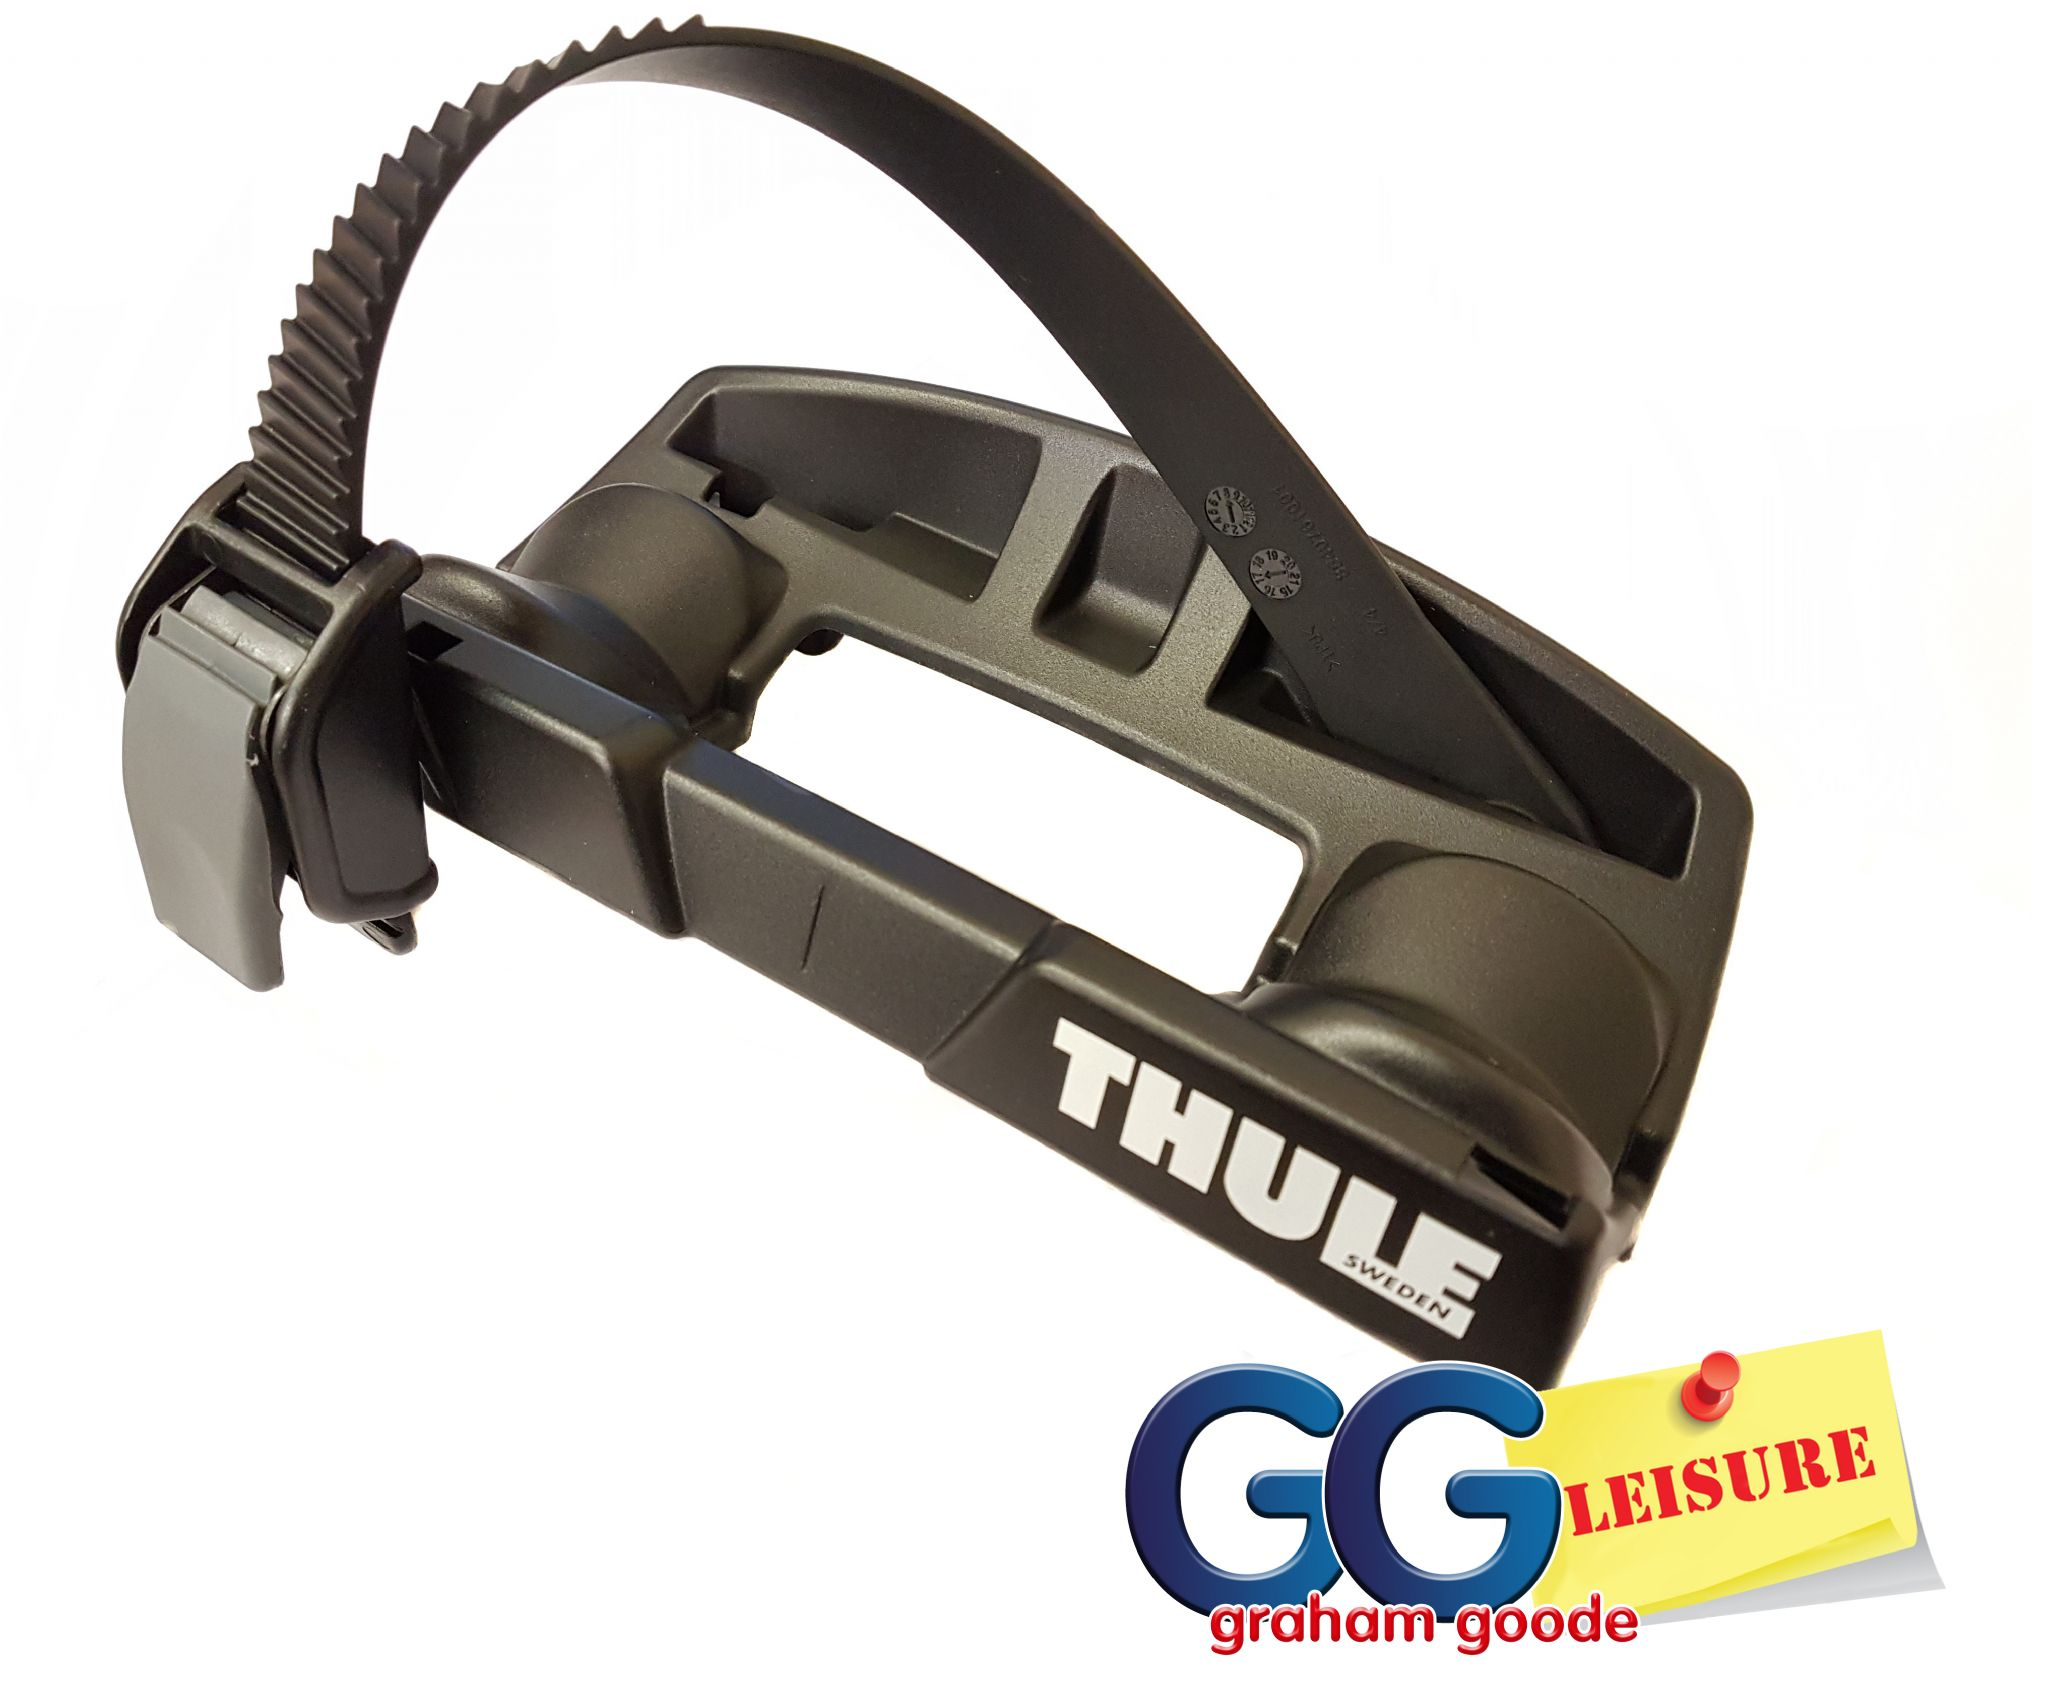 THULE 598 BIKE CARRIER LEICESTER | THULE SPARE PARTS LEICESTER | THULE PRO  RIDE WHEEL TRAY